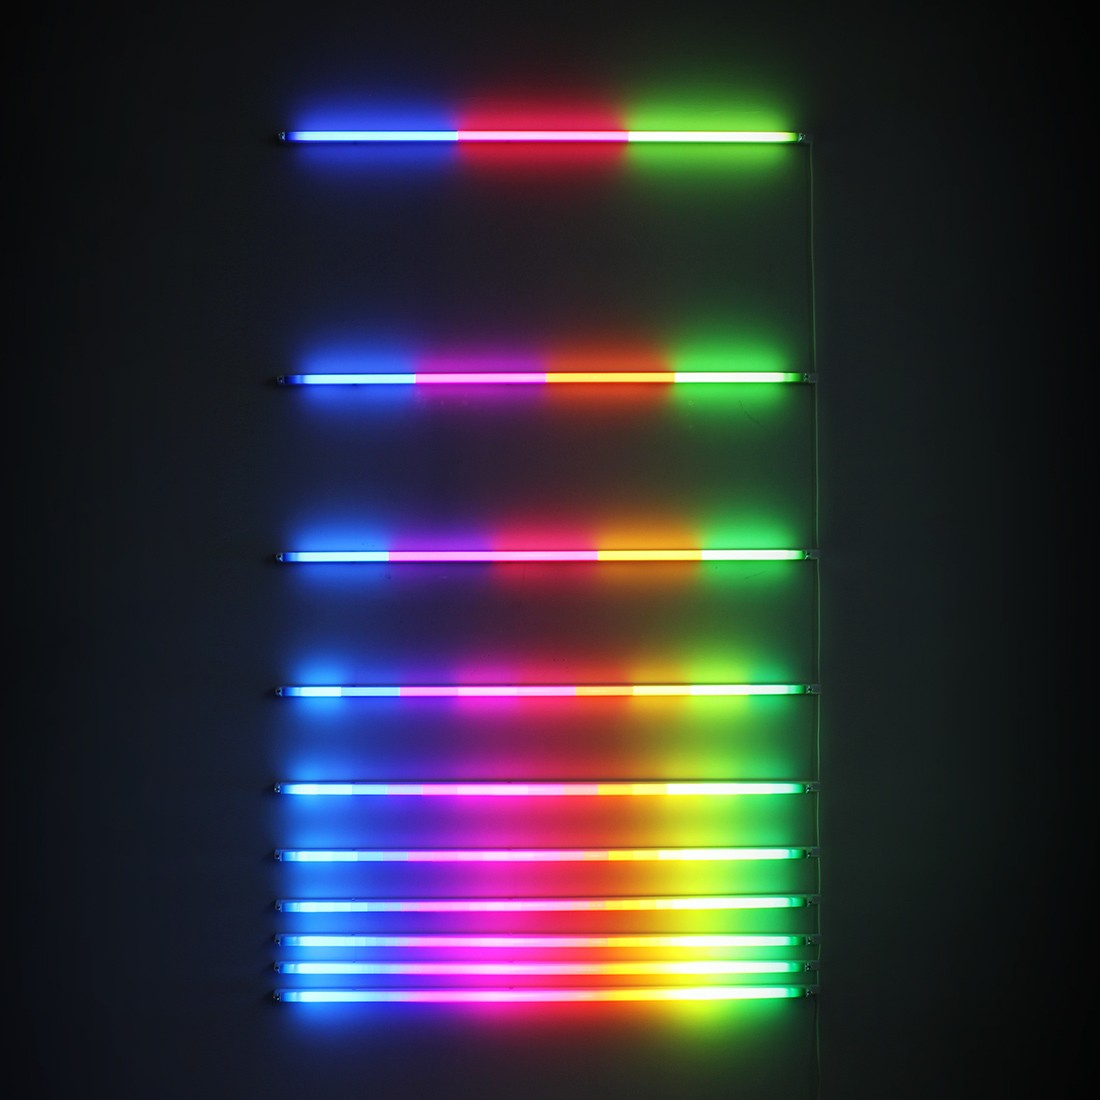 Colorful Light Sculptures by James Clar Interpret Technology's Effects on Our Perceived Reality